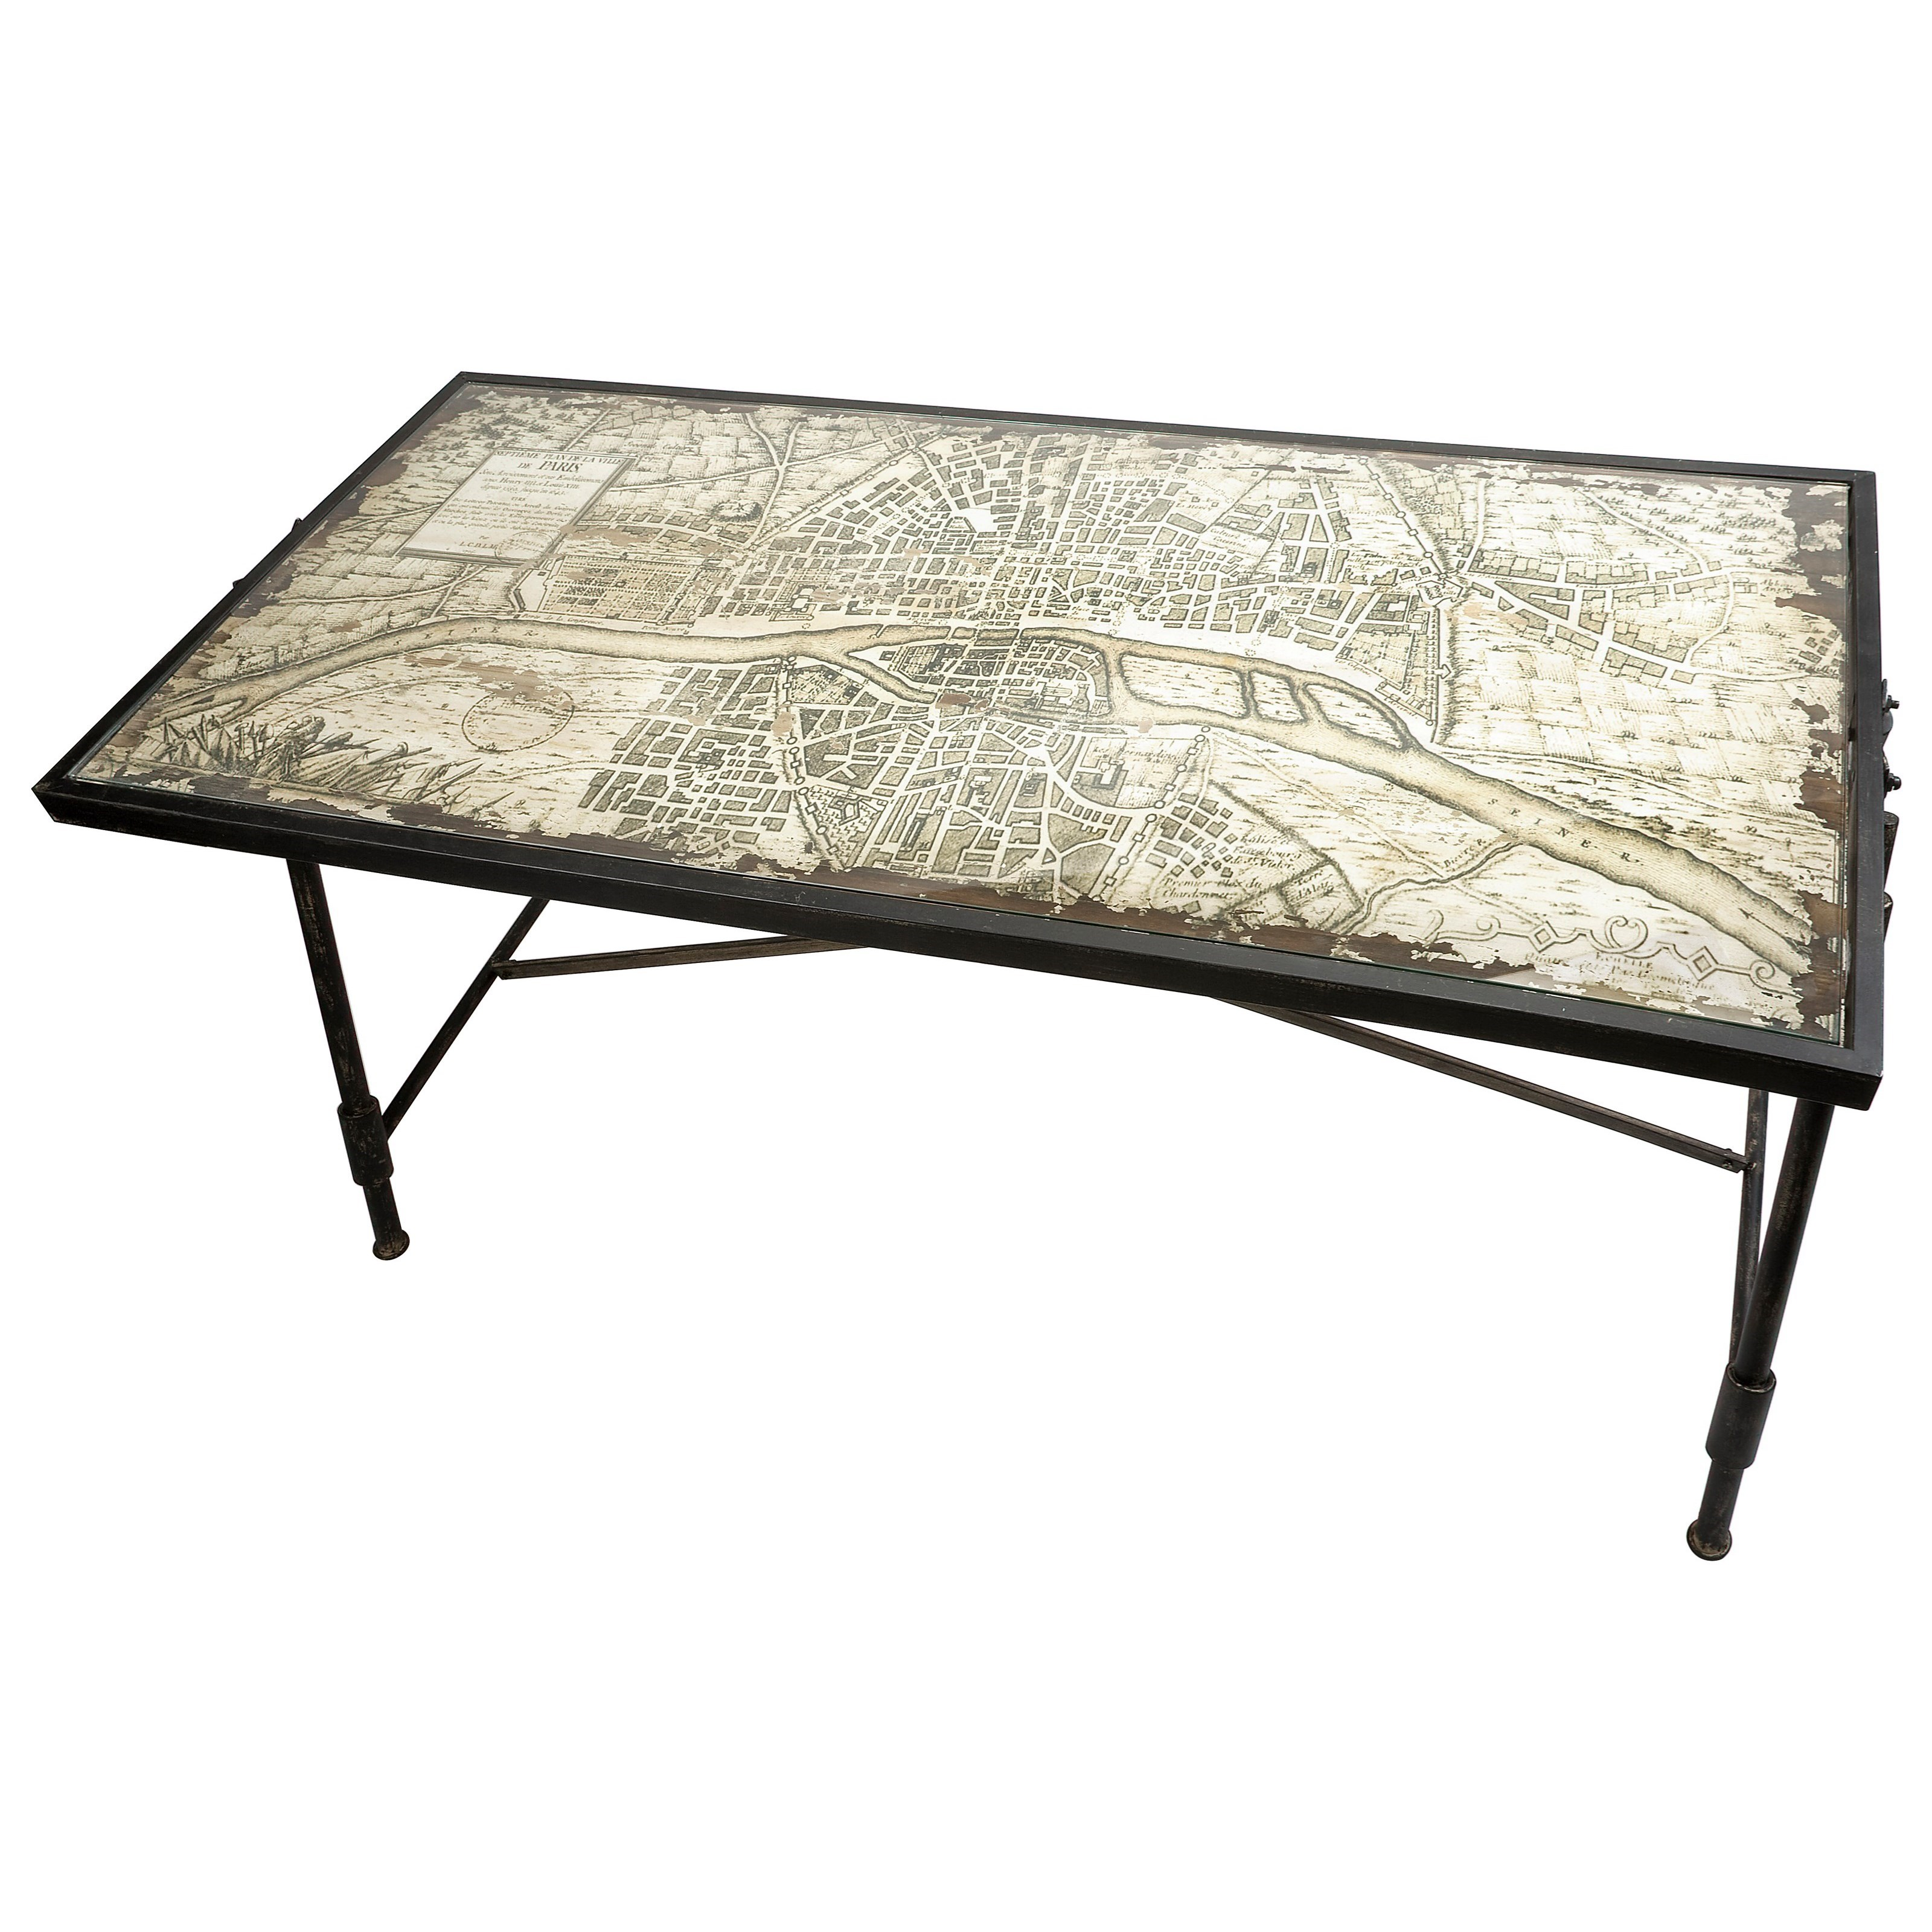 Accent Furniture Bedeau Paris Glass Top Writing Desk by IMAX Worldwide Home at Alison Craig Home Furnishings